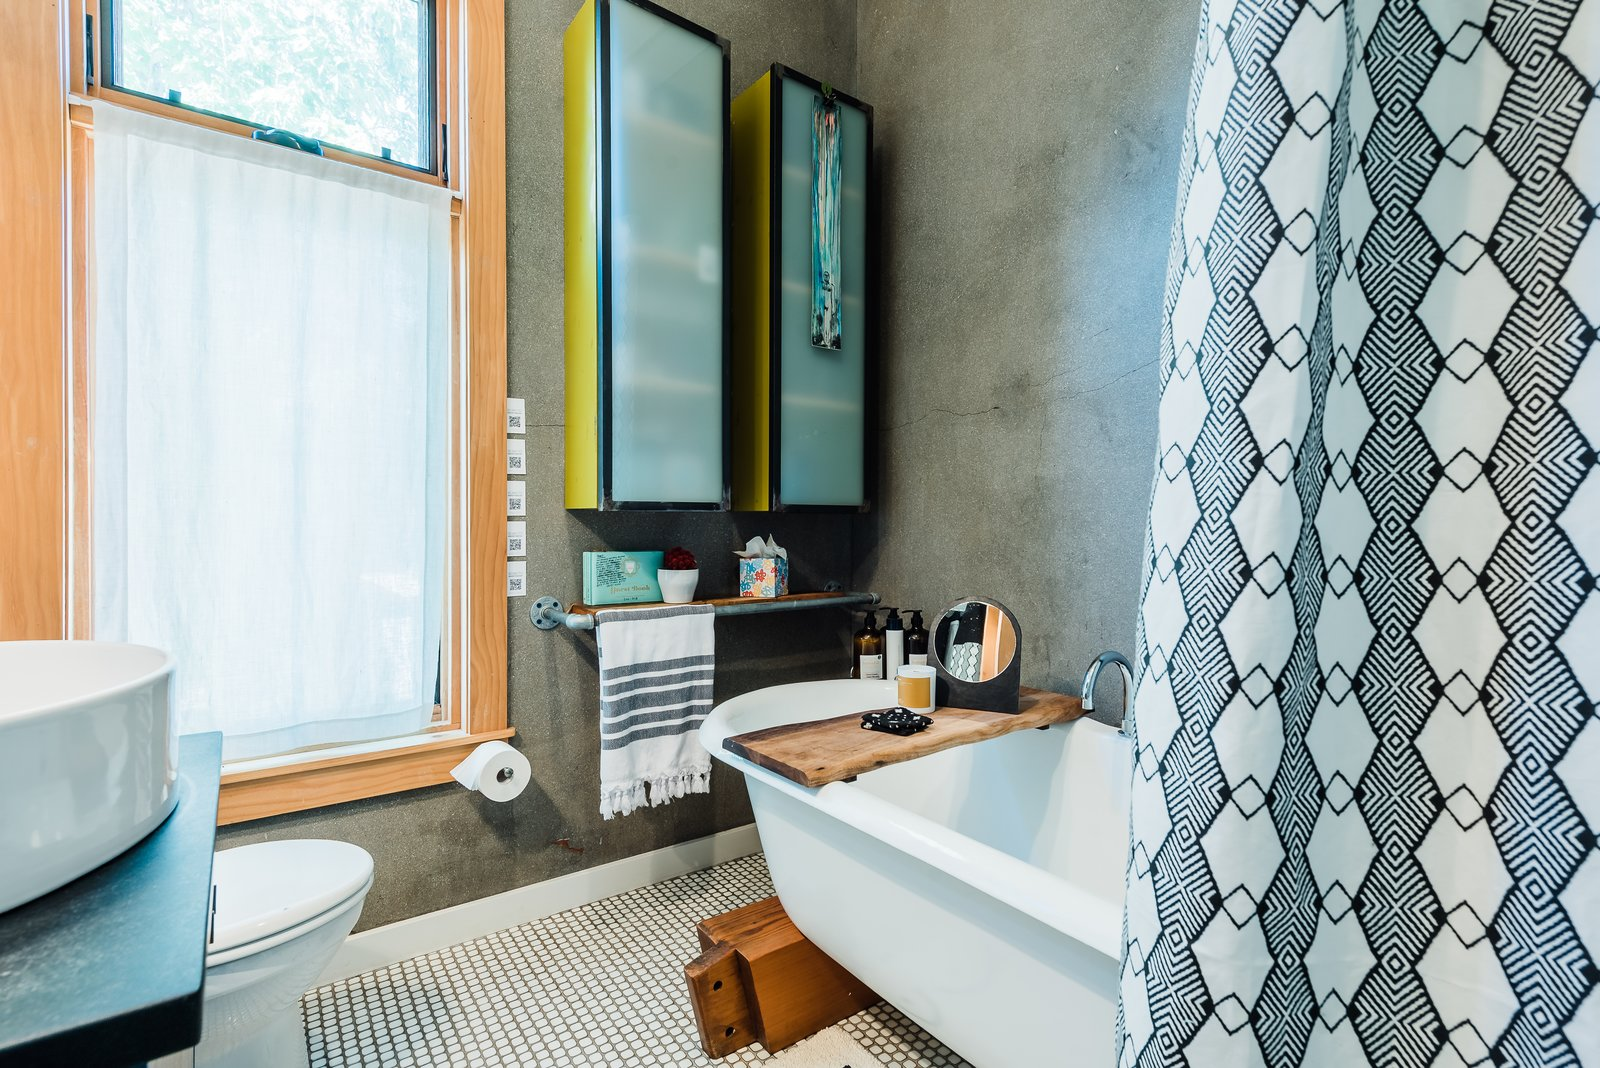 Bath Room, Soaking Tub, Freestanding Tub, Pedestal Sink, and Drop In Sink Quaint bathroom with a clawfoot tub at The Sursy GandyHouse.  Meet The Makers: ARCHITECT / Nicole Delmage, ShelterBelt Designs (Denver, CO) SHOWER CURTAIN / Tressa Lavinia Linzy Designs (Fernandina Beach, FL) WALNUT BATH TRAY / Protea & Pine (Denver, CO) CANDLE / North + 29 Candle Co (Castle Rock, CO) ROCKY MOUNTAIN MIRROR / soft co. (Philadelphia, PA) PAPER PRODUCTS / Who Gives A Crap (Melbourne, Victoria) MUDCLOTH COASTERS / Reflektion Design (Los Angeles, CA)  The Sursy GandyHouse by The Sursy